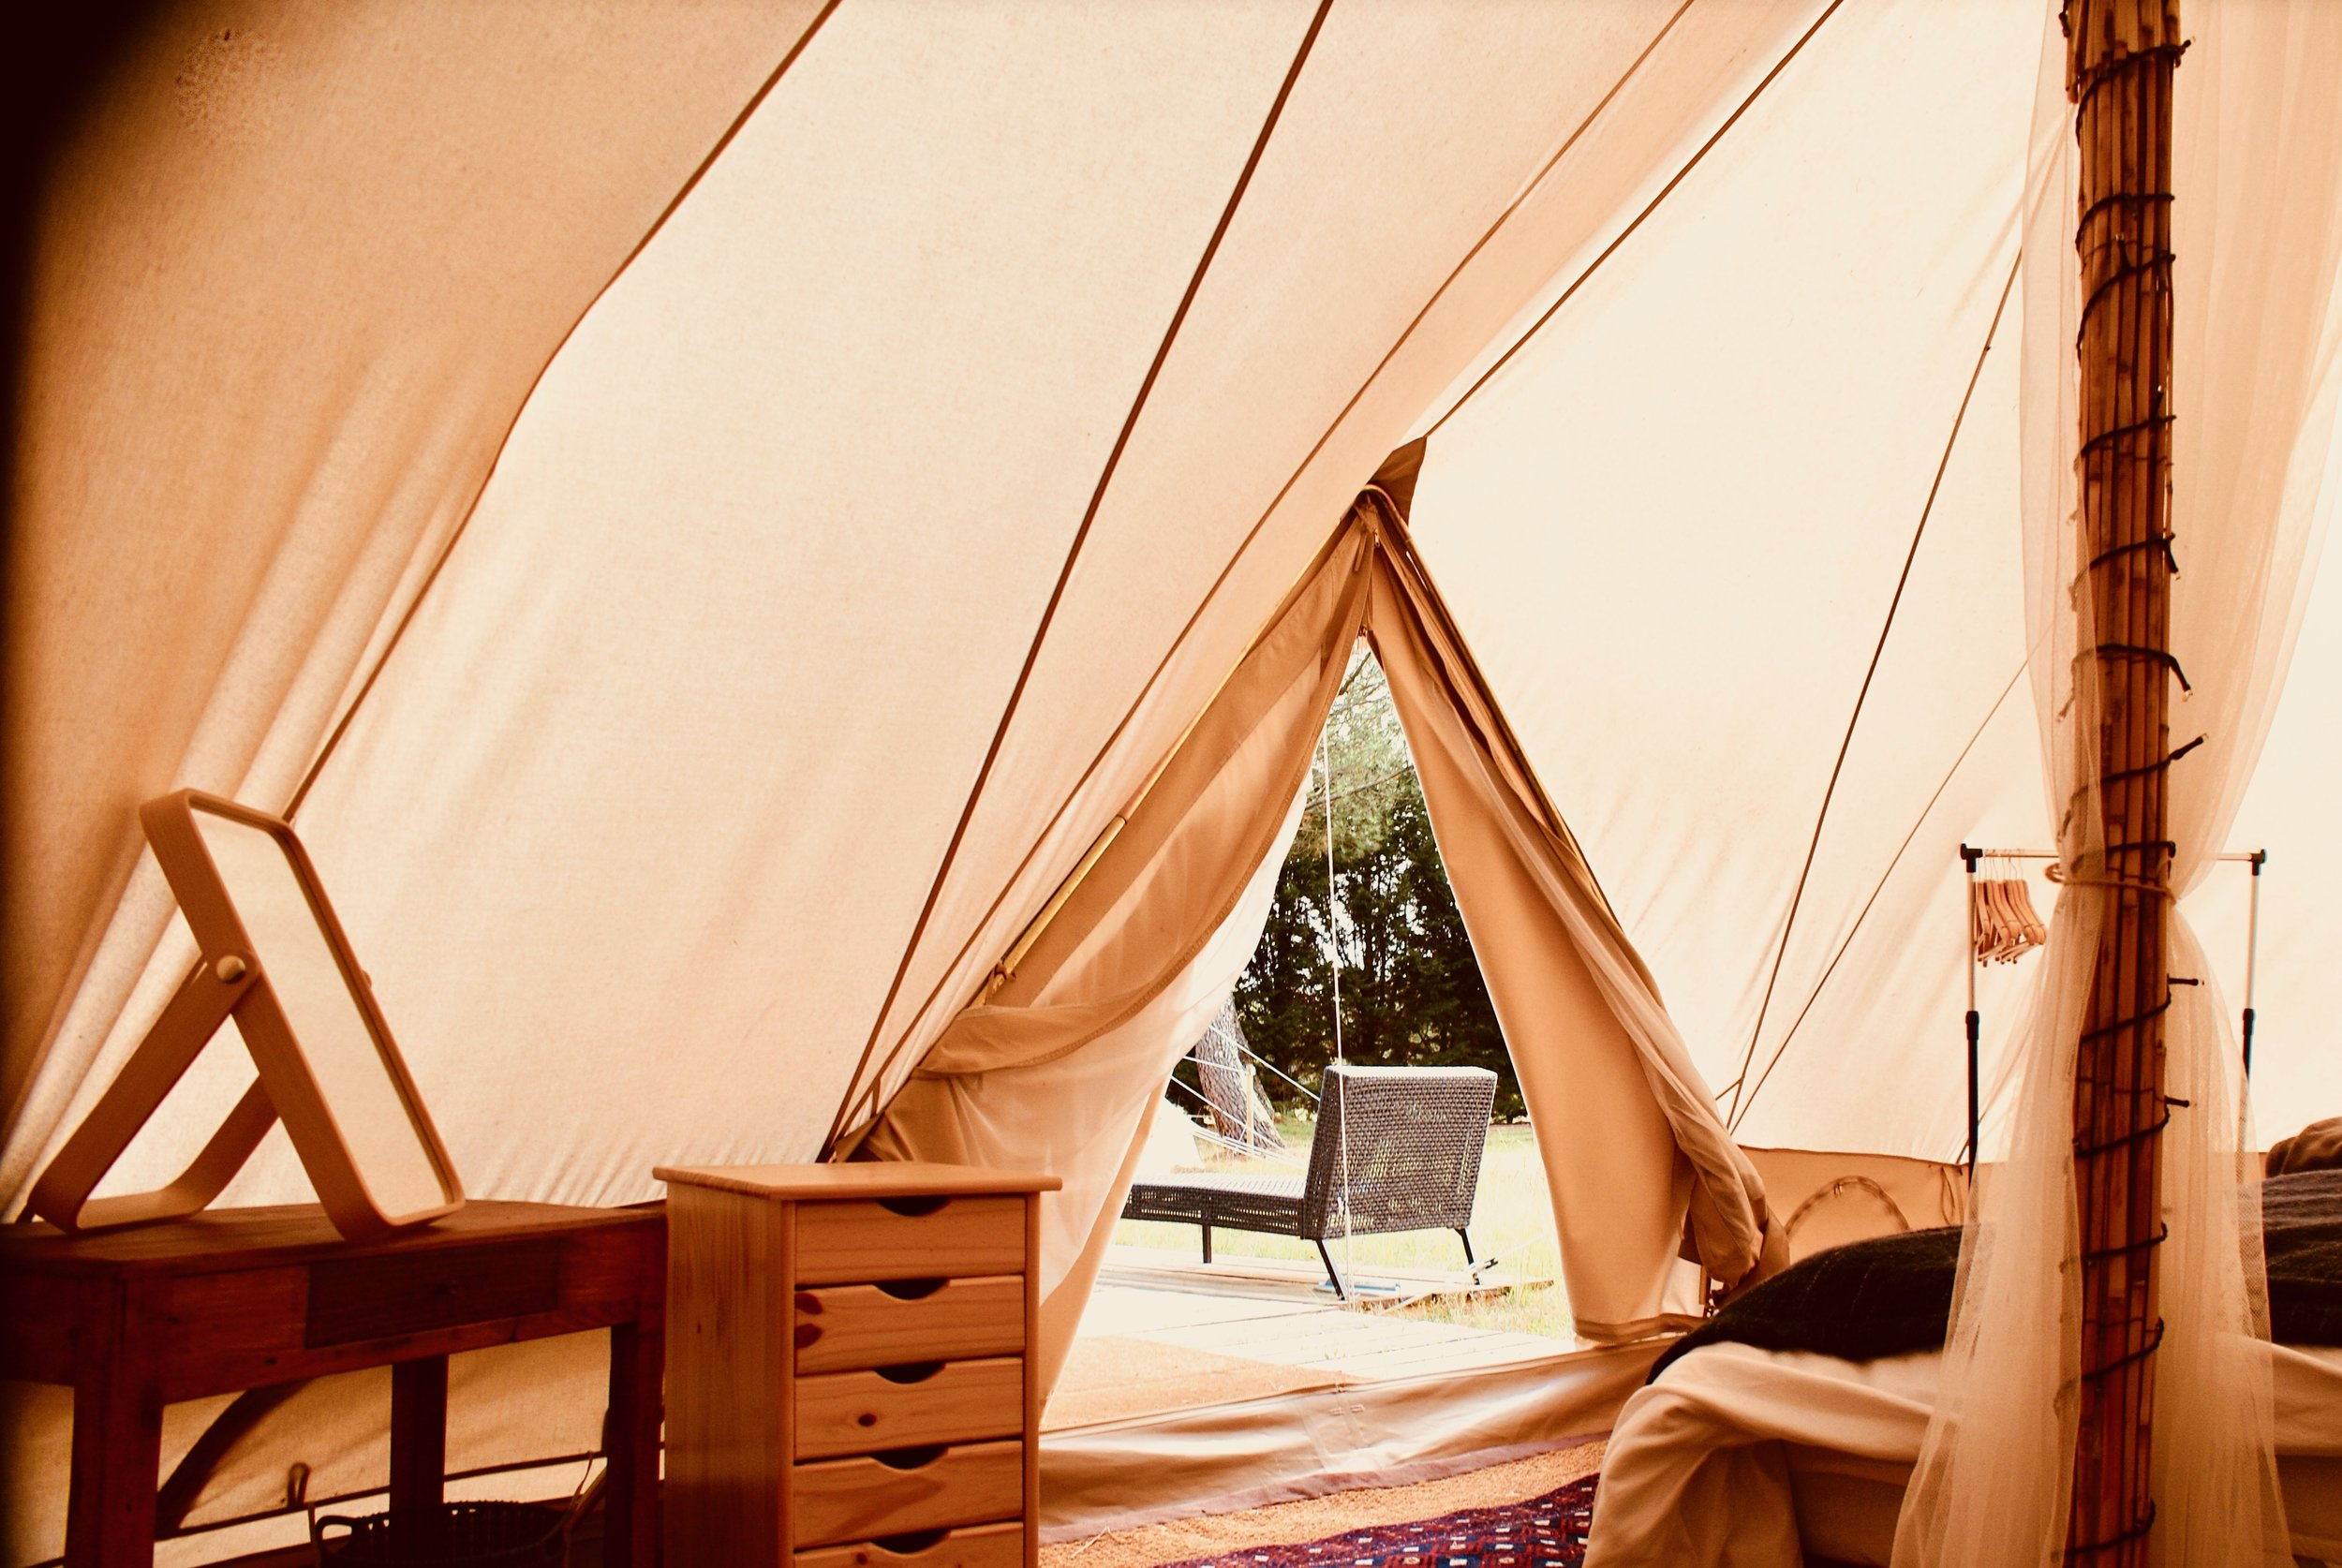 tent bell interior glamping 2017 1 sanctuary surf holiday.jpg